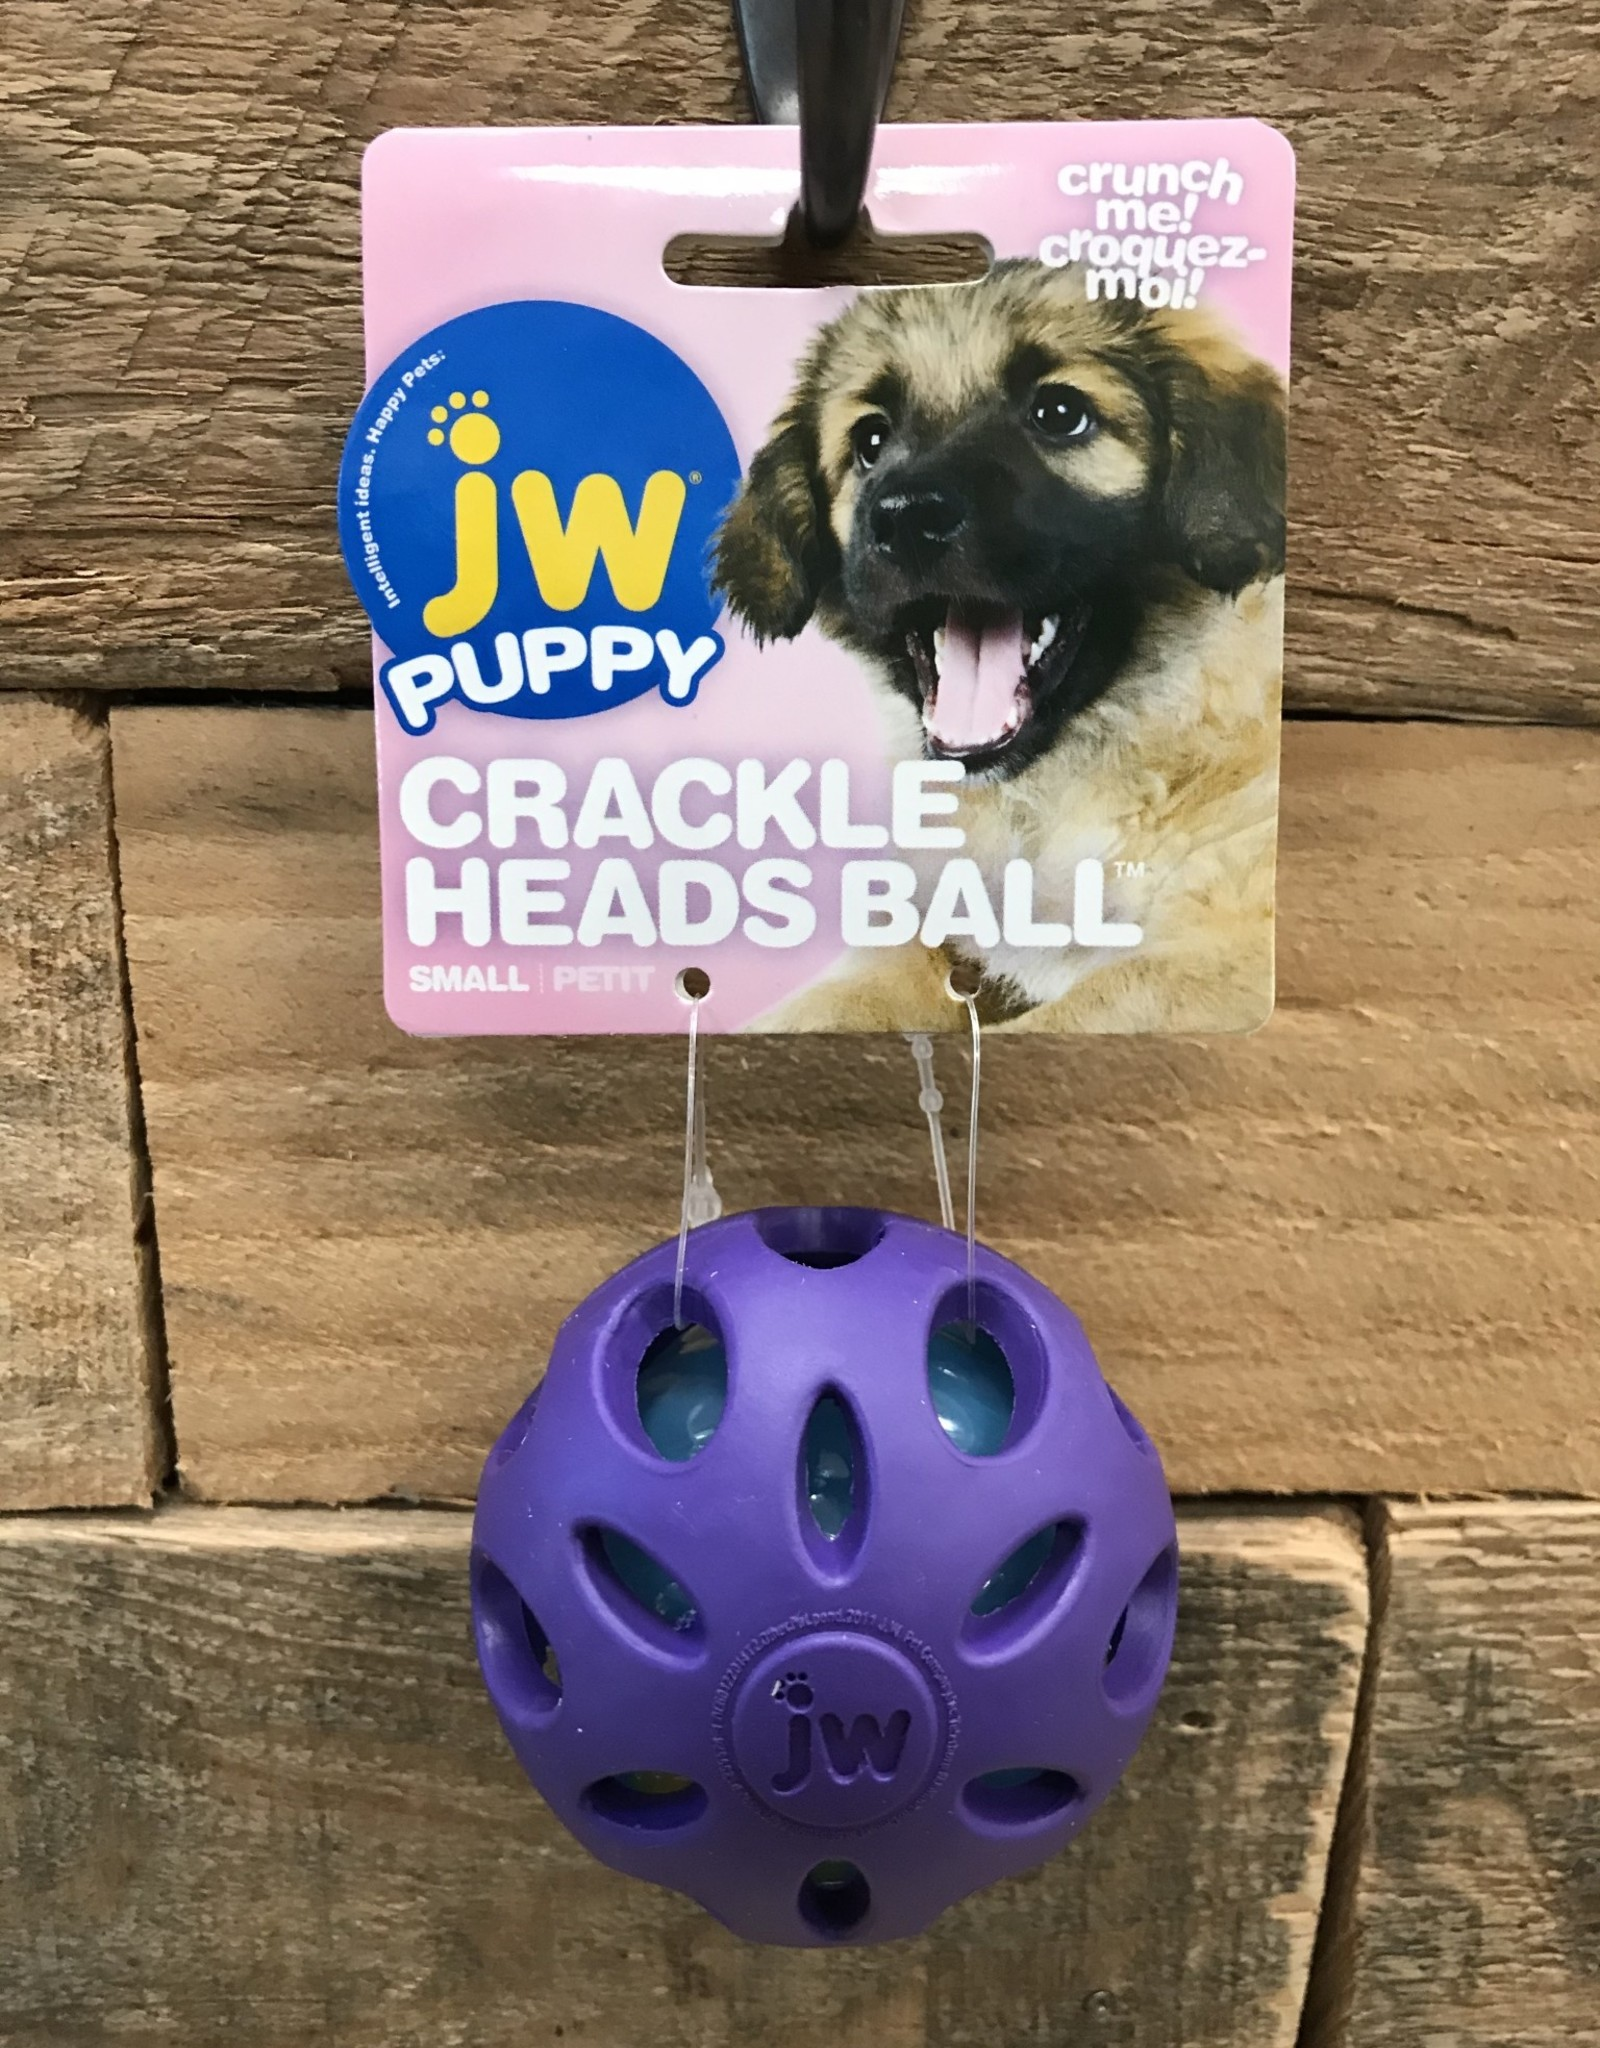 JW JW Puppy Crackle Heads Ball Small Assorted